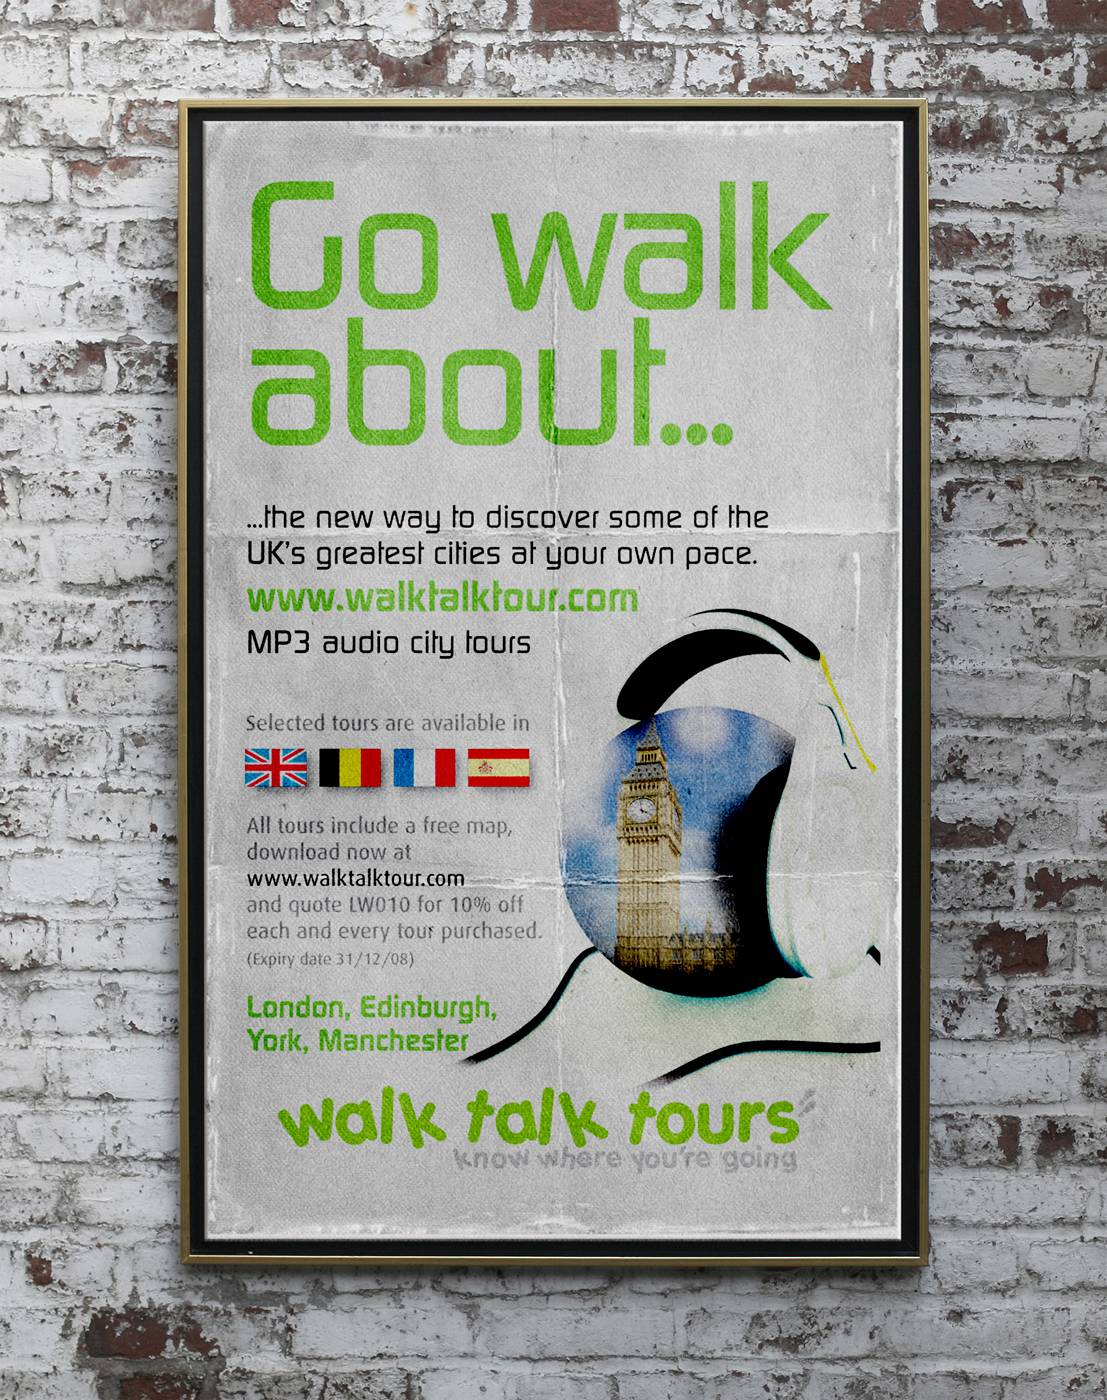 Walk Talk Tours